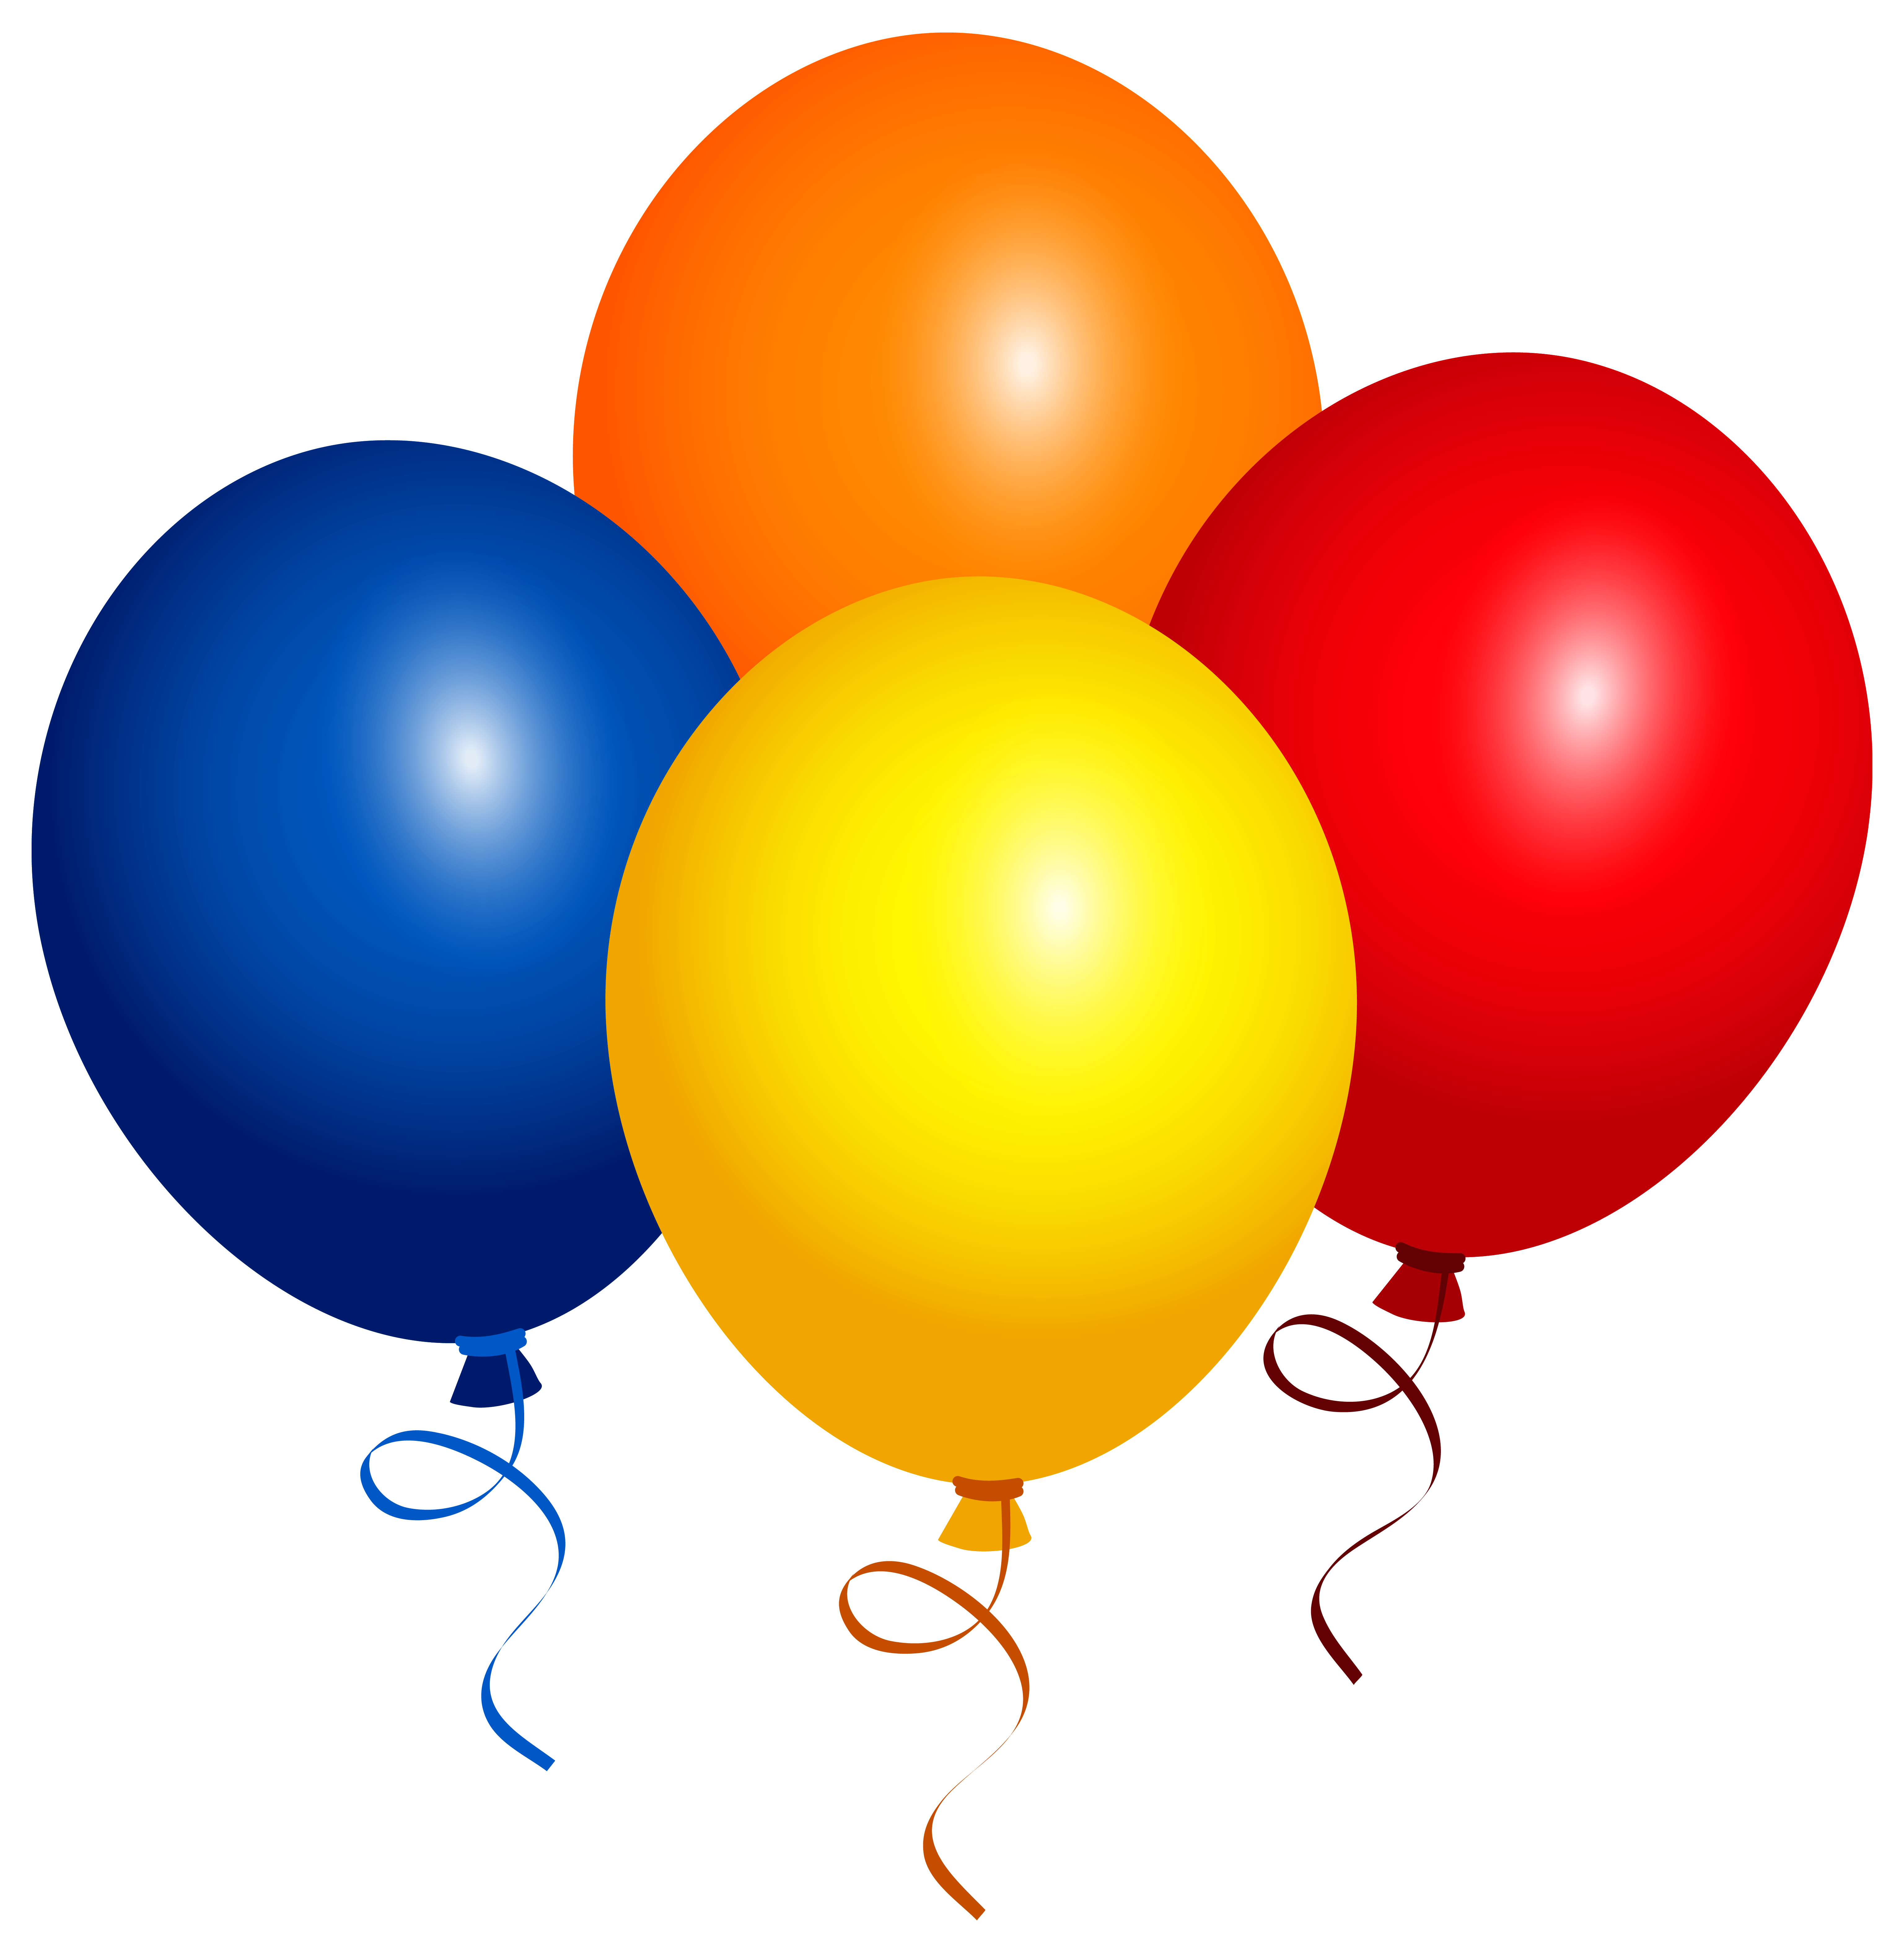 Balloons png image gallery. Four clipart birthday baloon svg free download